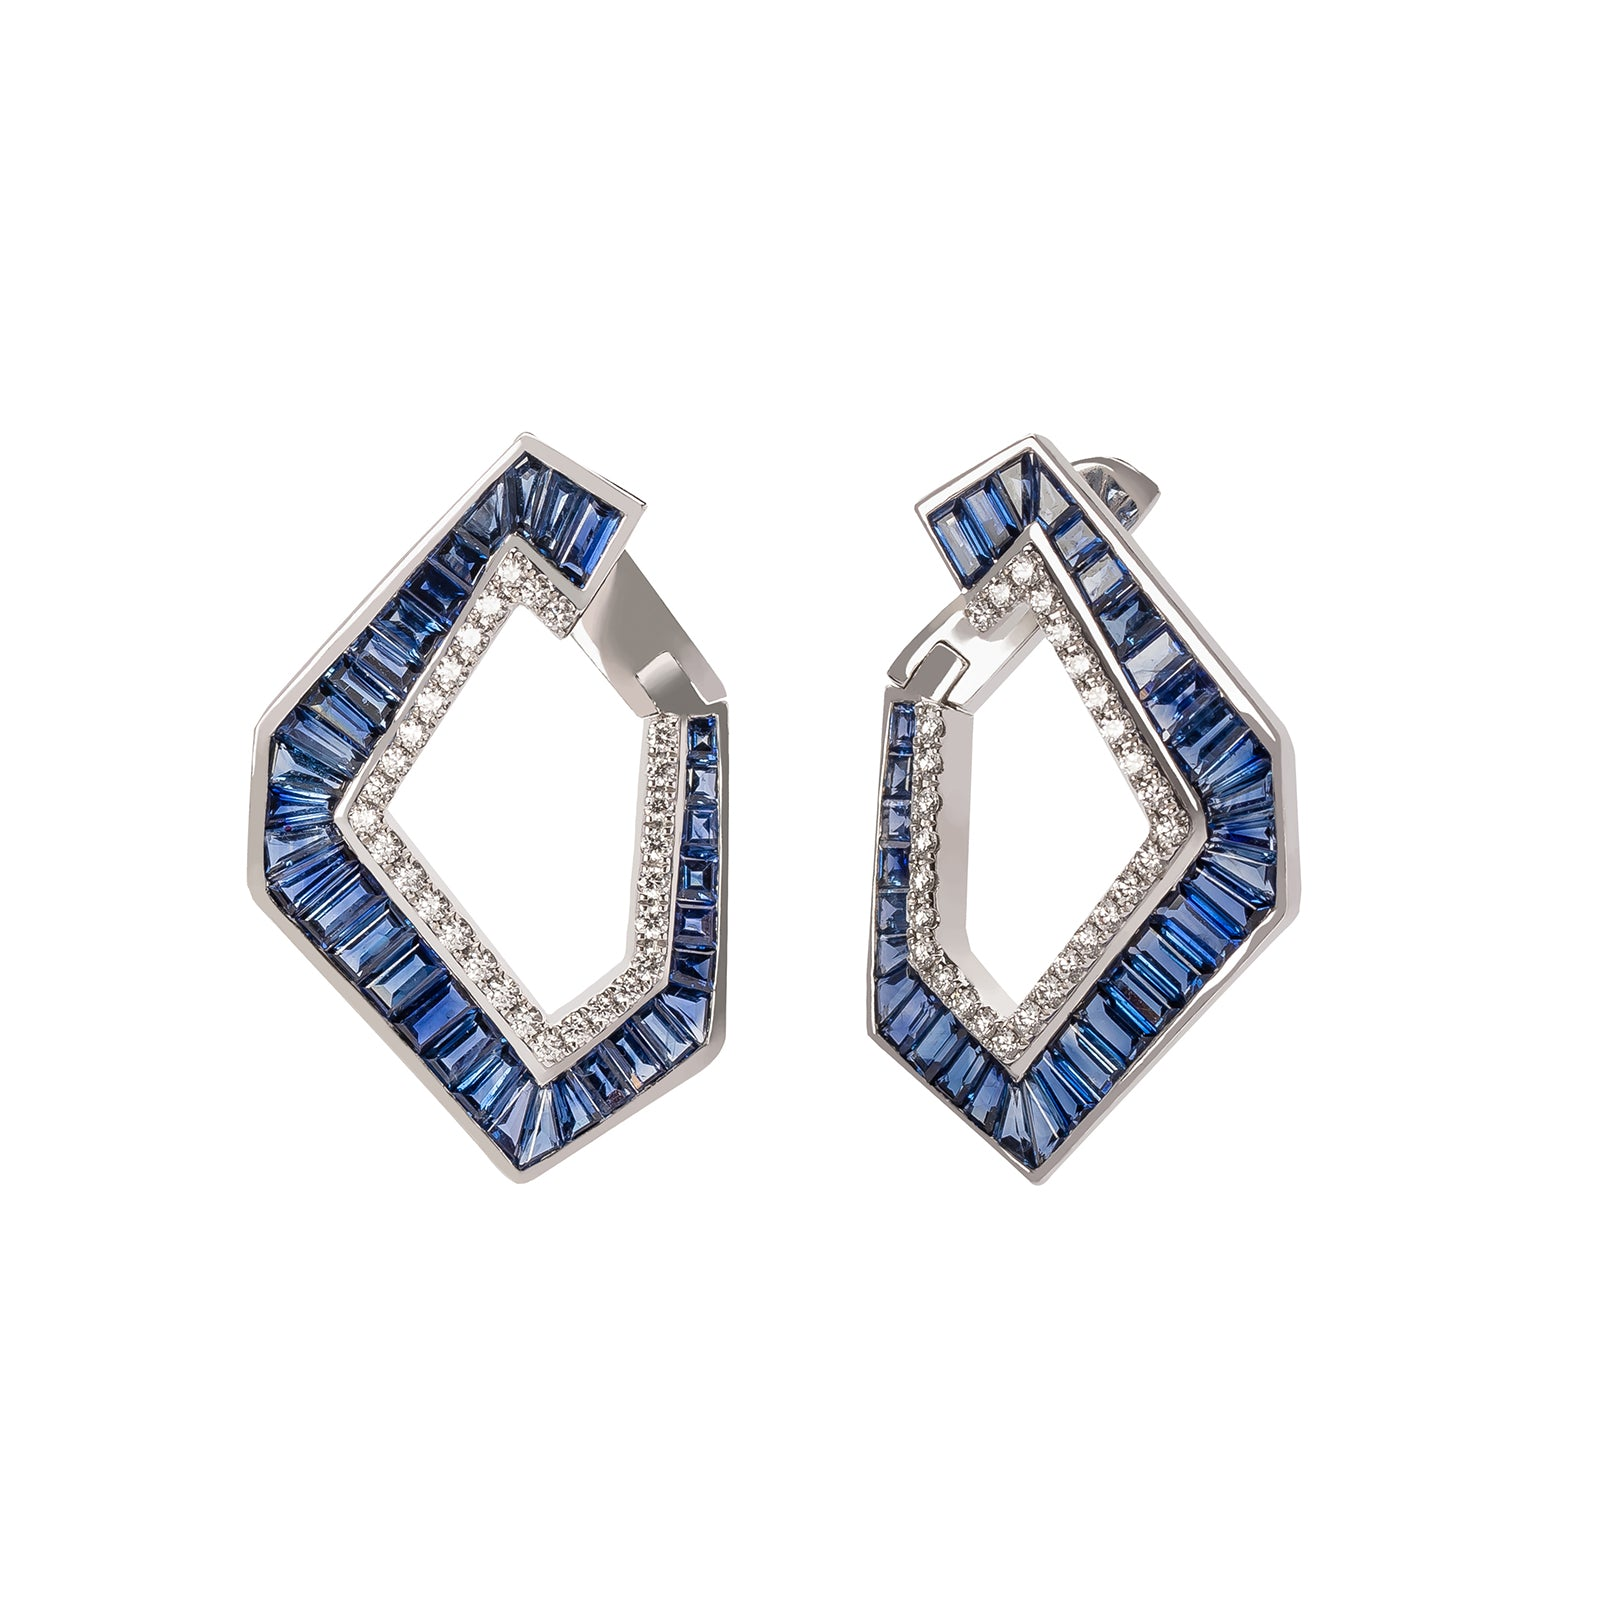 Kavant & Sharart Origami Large Link Earrings - Sapphire - Earrings - Broken English Jewelry